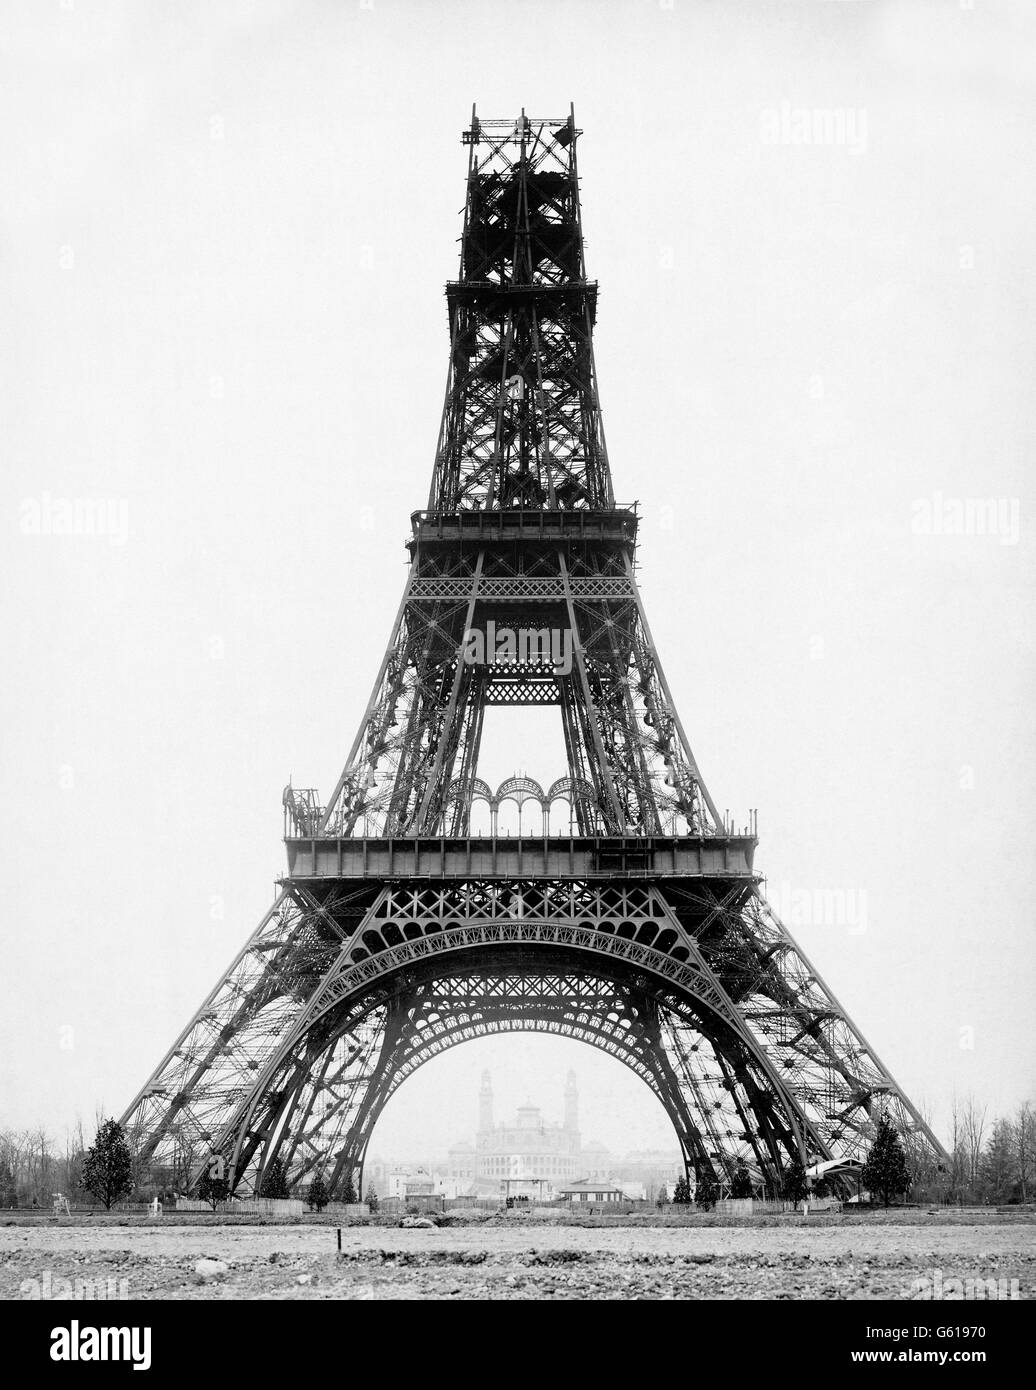 Eiffel Tower under construction, built to serve as the entrance to the Paris Exposition of 1889. This photograph, - Stock Image